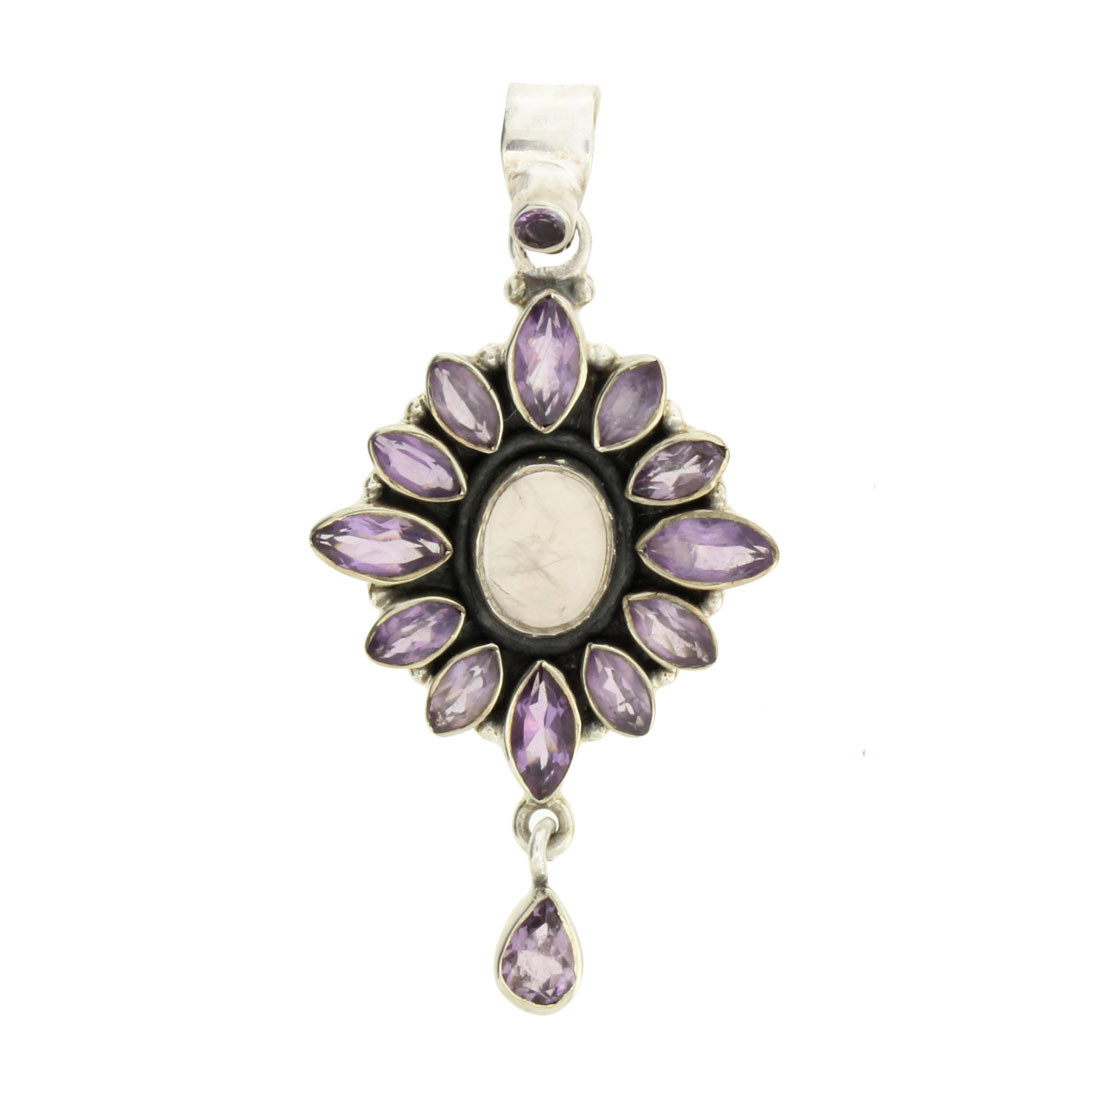 Faceted Amethyst and Rose Quartz Pendant Sterling Silver